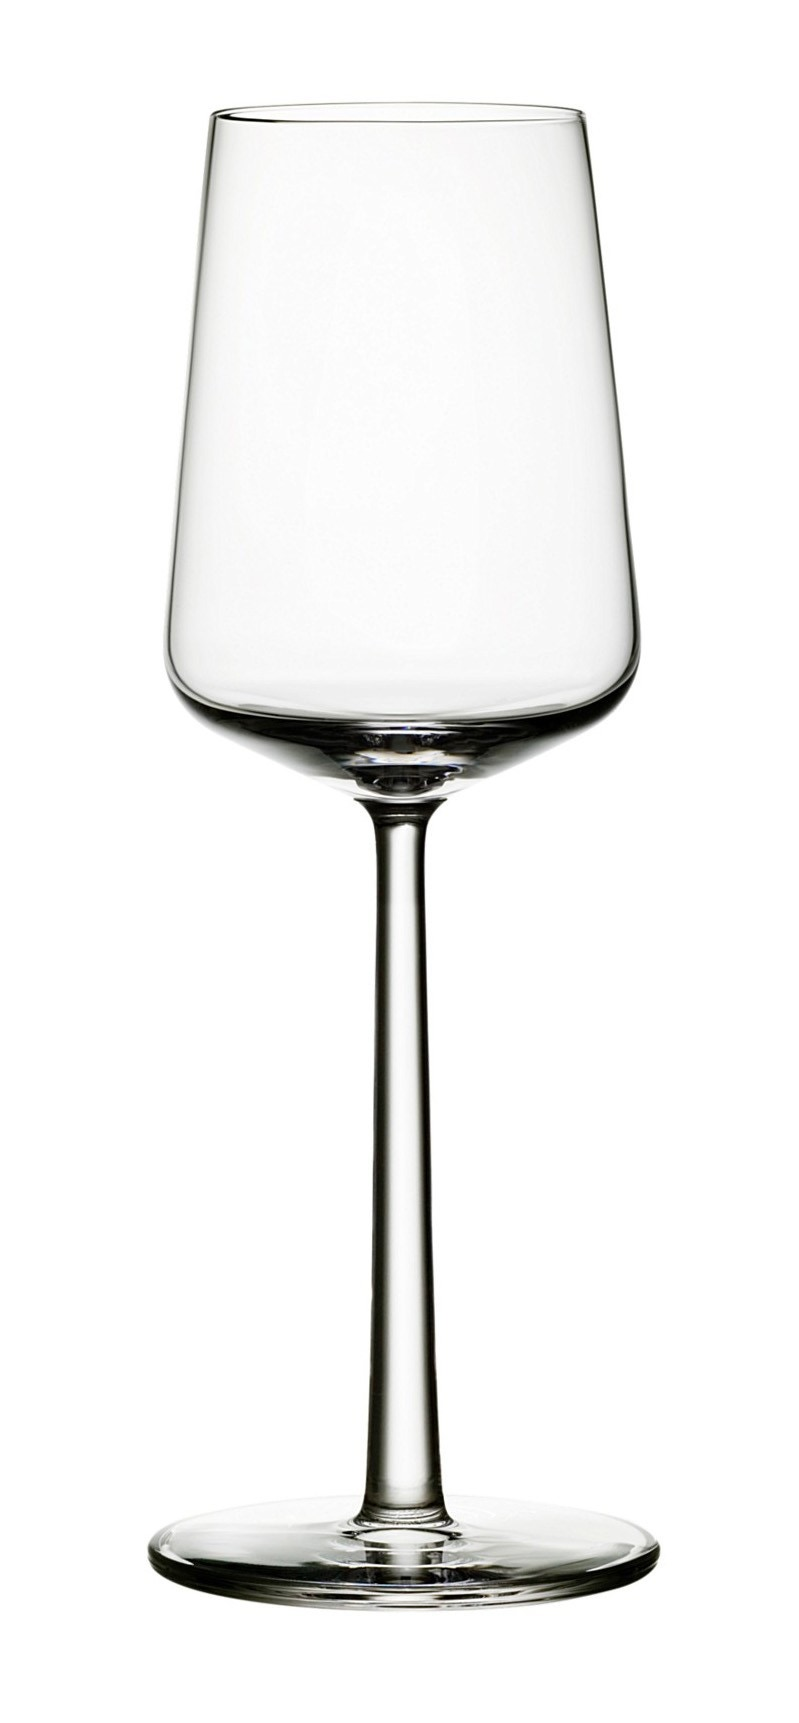 Iittala Essence Set of Two White Wine Glasses